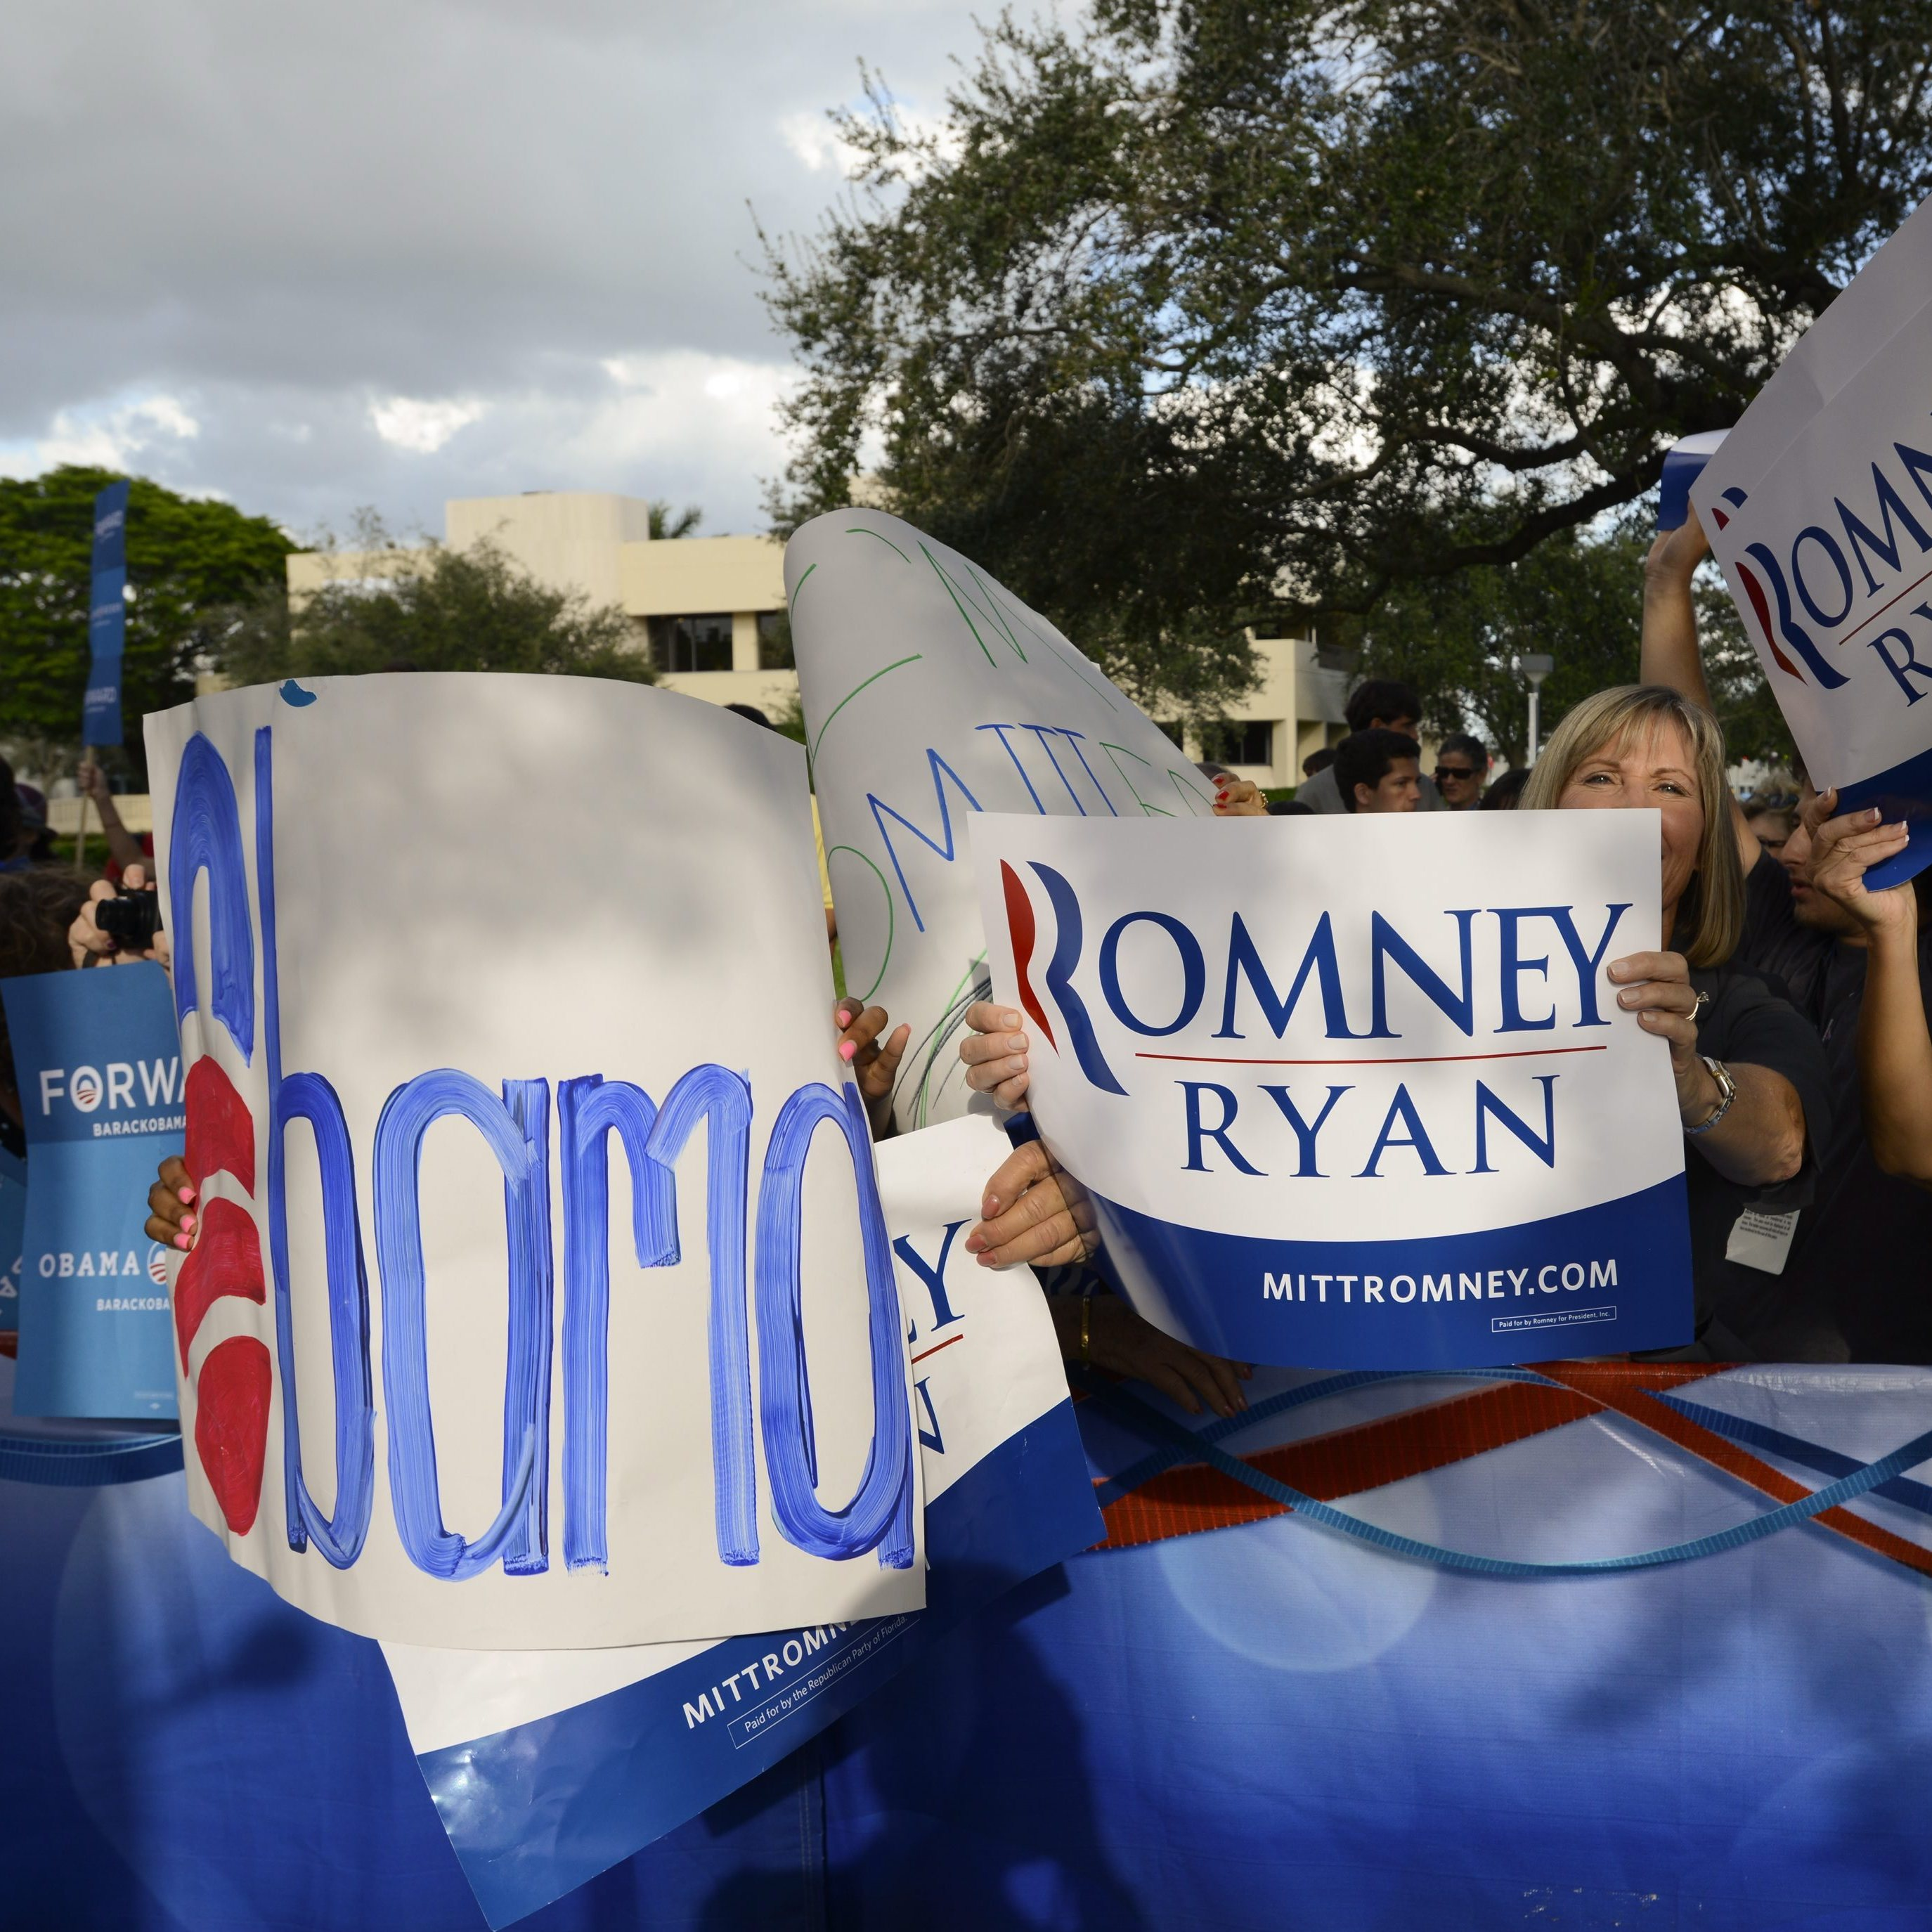 Earlier today in Boca Raton, Fla., supporters of Republican presidential nominee Mitt Romney and President Obama gathered at Lynn University, where tonight's debate is being held.